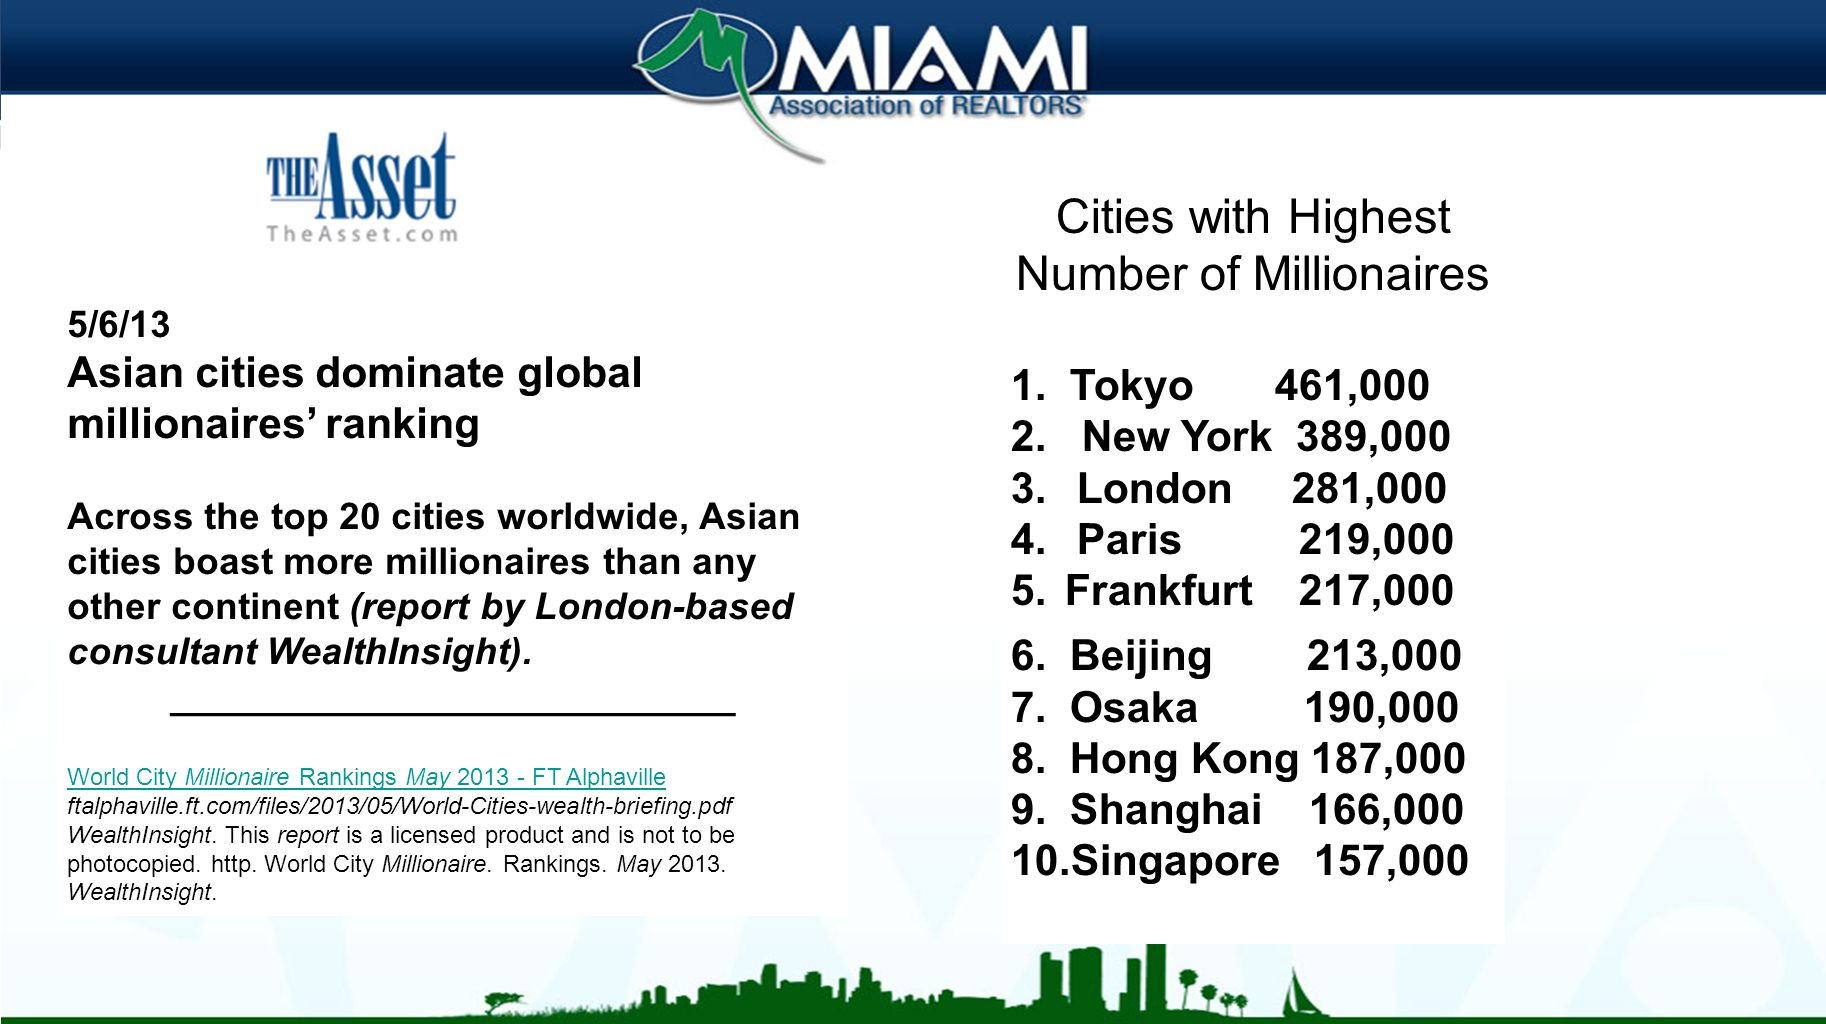 5/6/13 Asian cities dominate global millionaires' ranking Across the top 20 cities worldwide, Asian cities boast more millionaires than any other continent (report by London-based consultant WealthInsight).